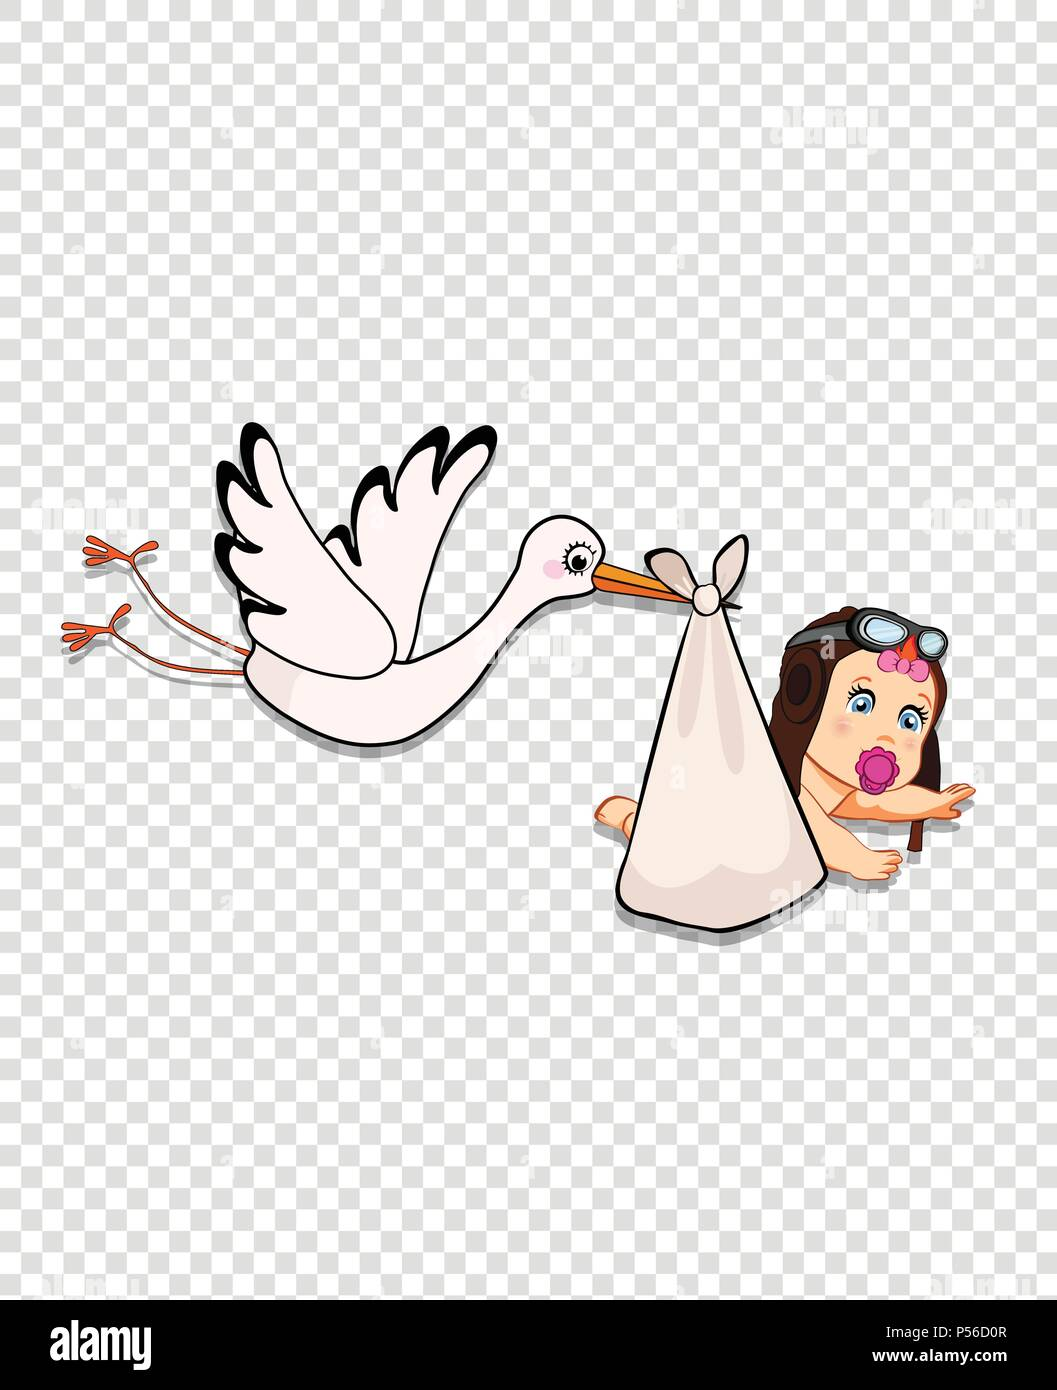 e52621a992a Its a girl cartoon vector illustration with stork bringing cute baby  wearing pilot hat on transparent